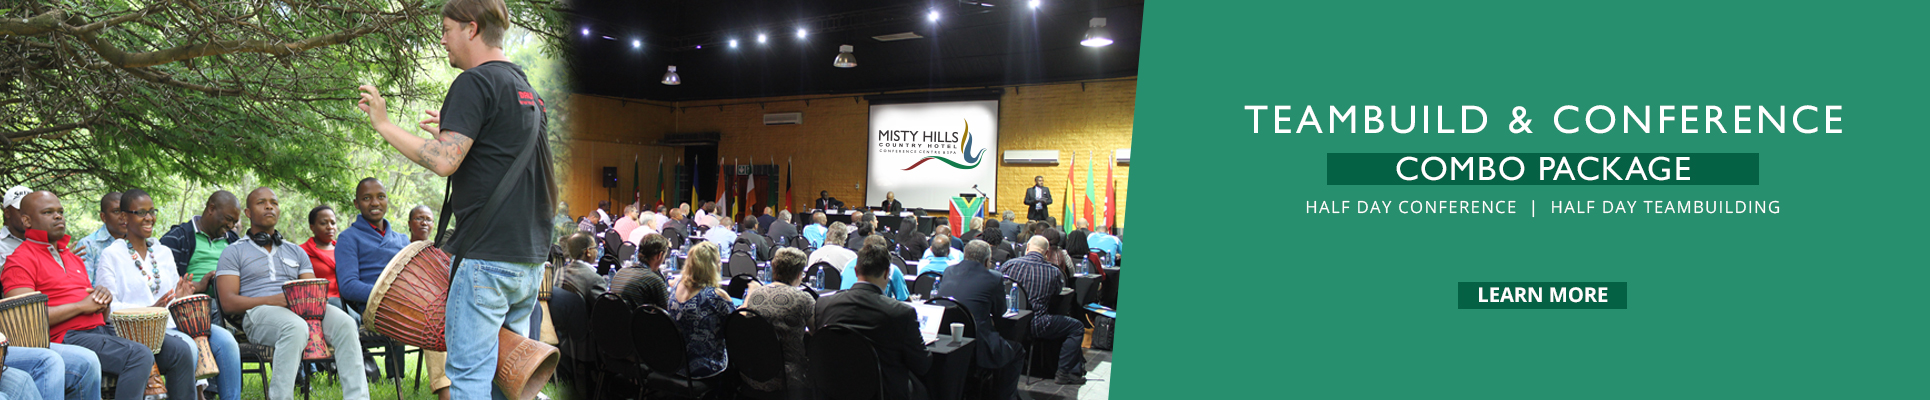 Misty Hills Winter Conference Specials in Muldersdrift Gauteng